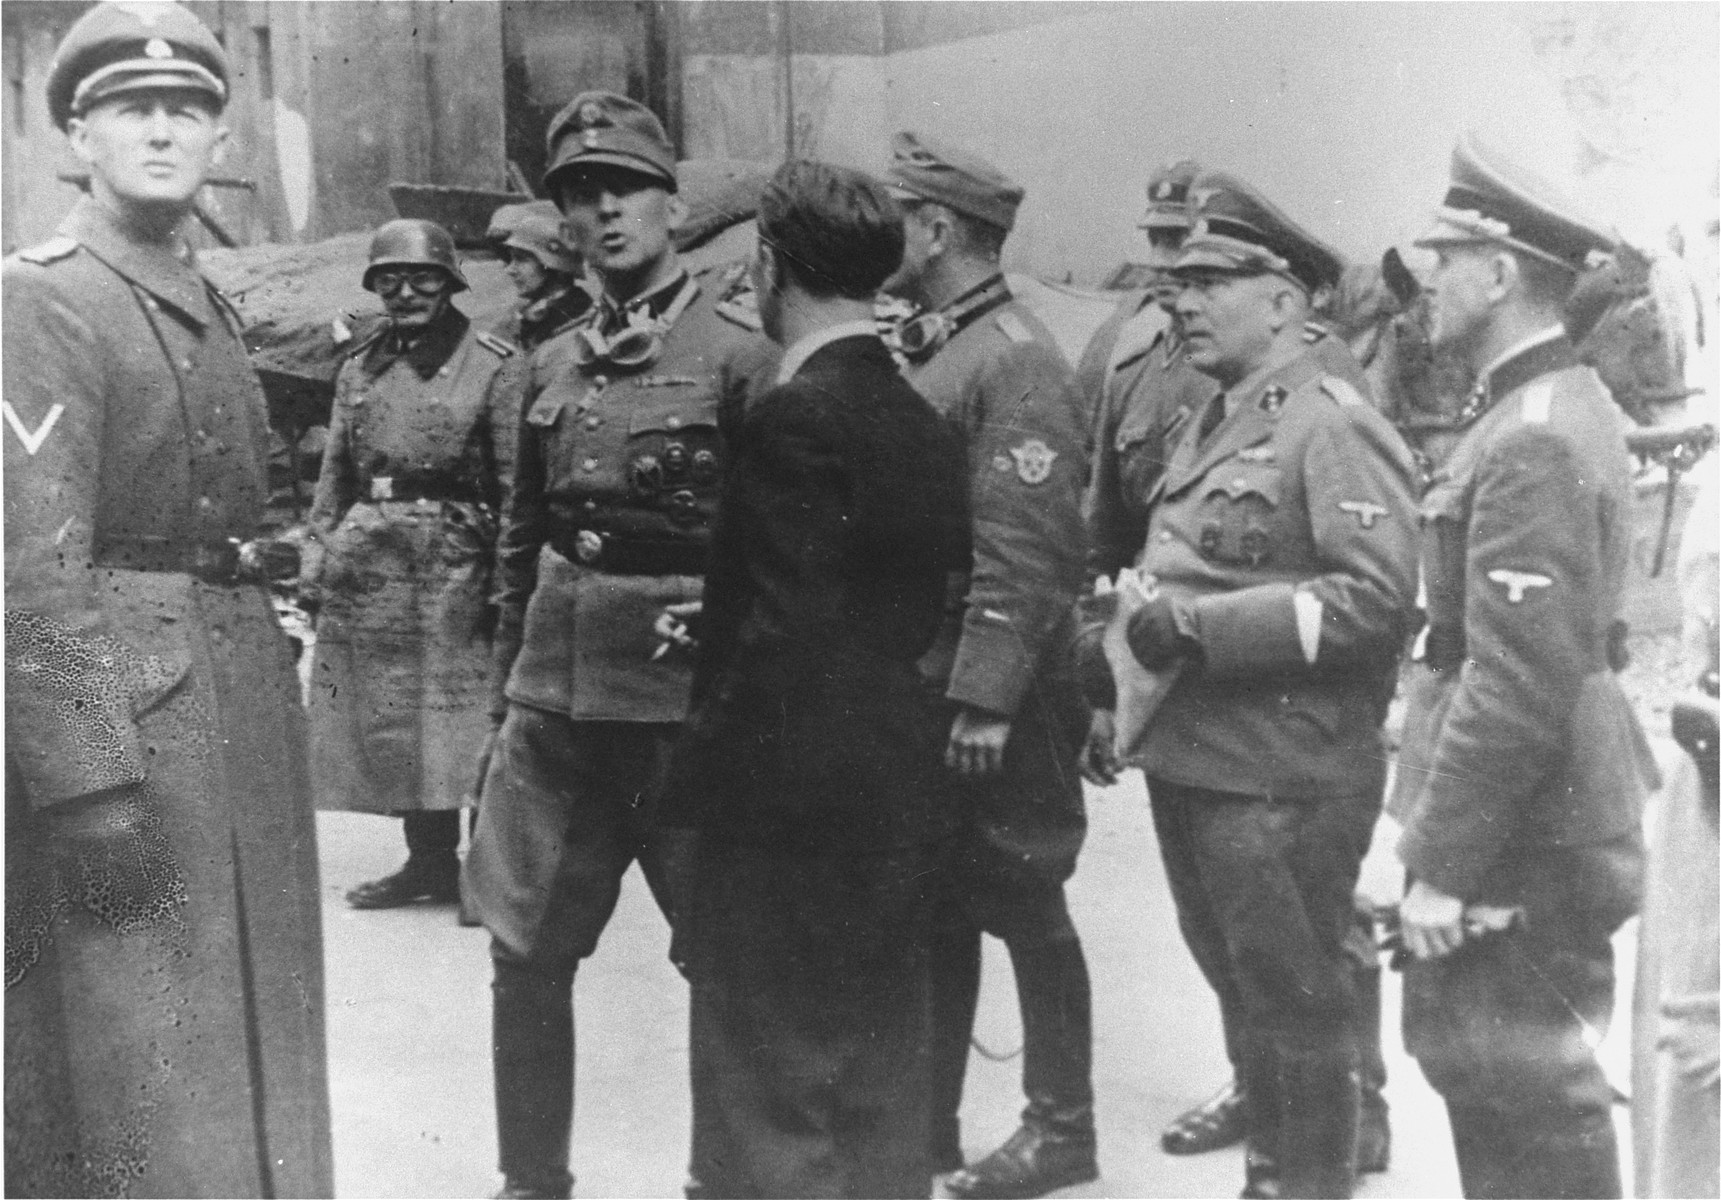 SS Major General Juergen Stroop (second from left) gathers information from a civilian on the second day of the suppression of the Warsaw ghetto uprising.    Accompanying Stroop are the various officers of his command staff, including SS Fuehrer Conrad (left), Stroop's police adjutant, Kaleschke (partially hidden), SS Lieutenant (Untersturmfuehrer) Karl Brandt (third from right), SS Lieutenant (Untersturmfuehrer) Schwarz (second from right), and a lieutenant (Untersturmfuehrer) in the SD.